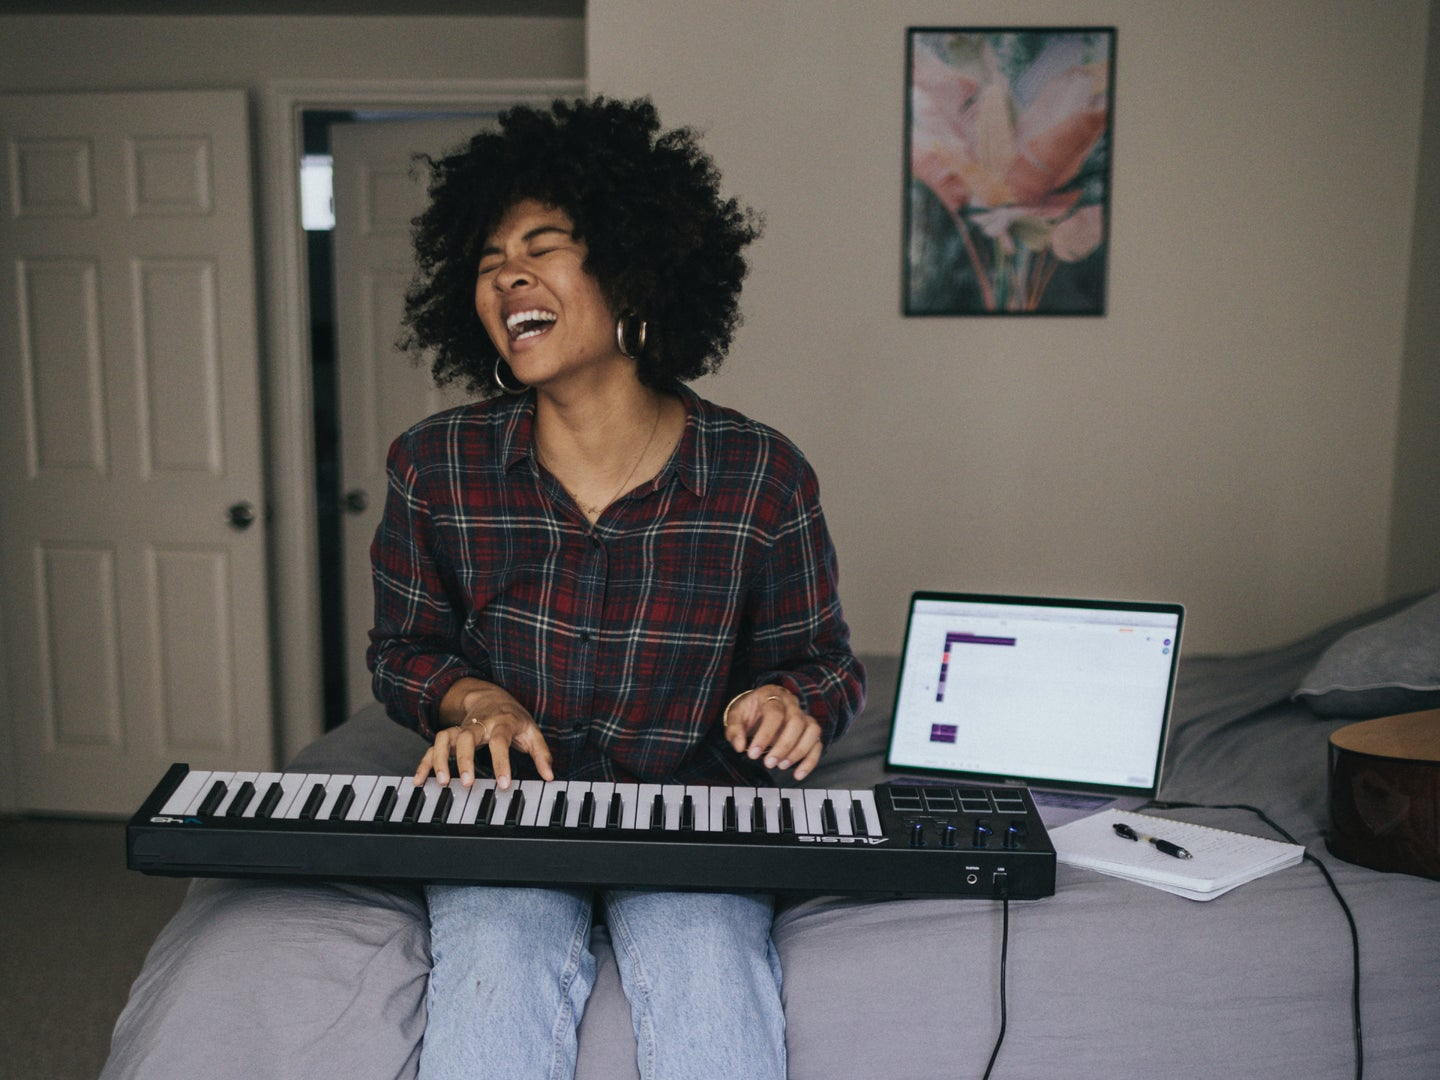 A person sitting on a bed, enjoying playing a keyboard that's hooked up to a laptop.